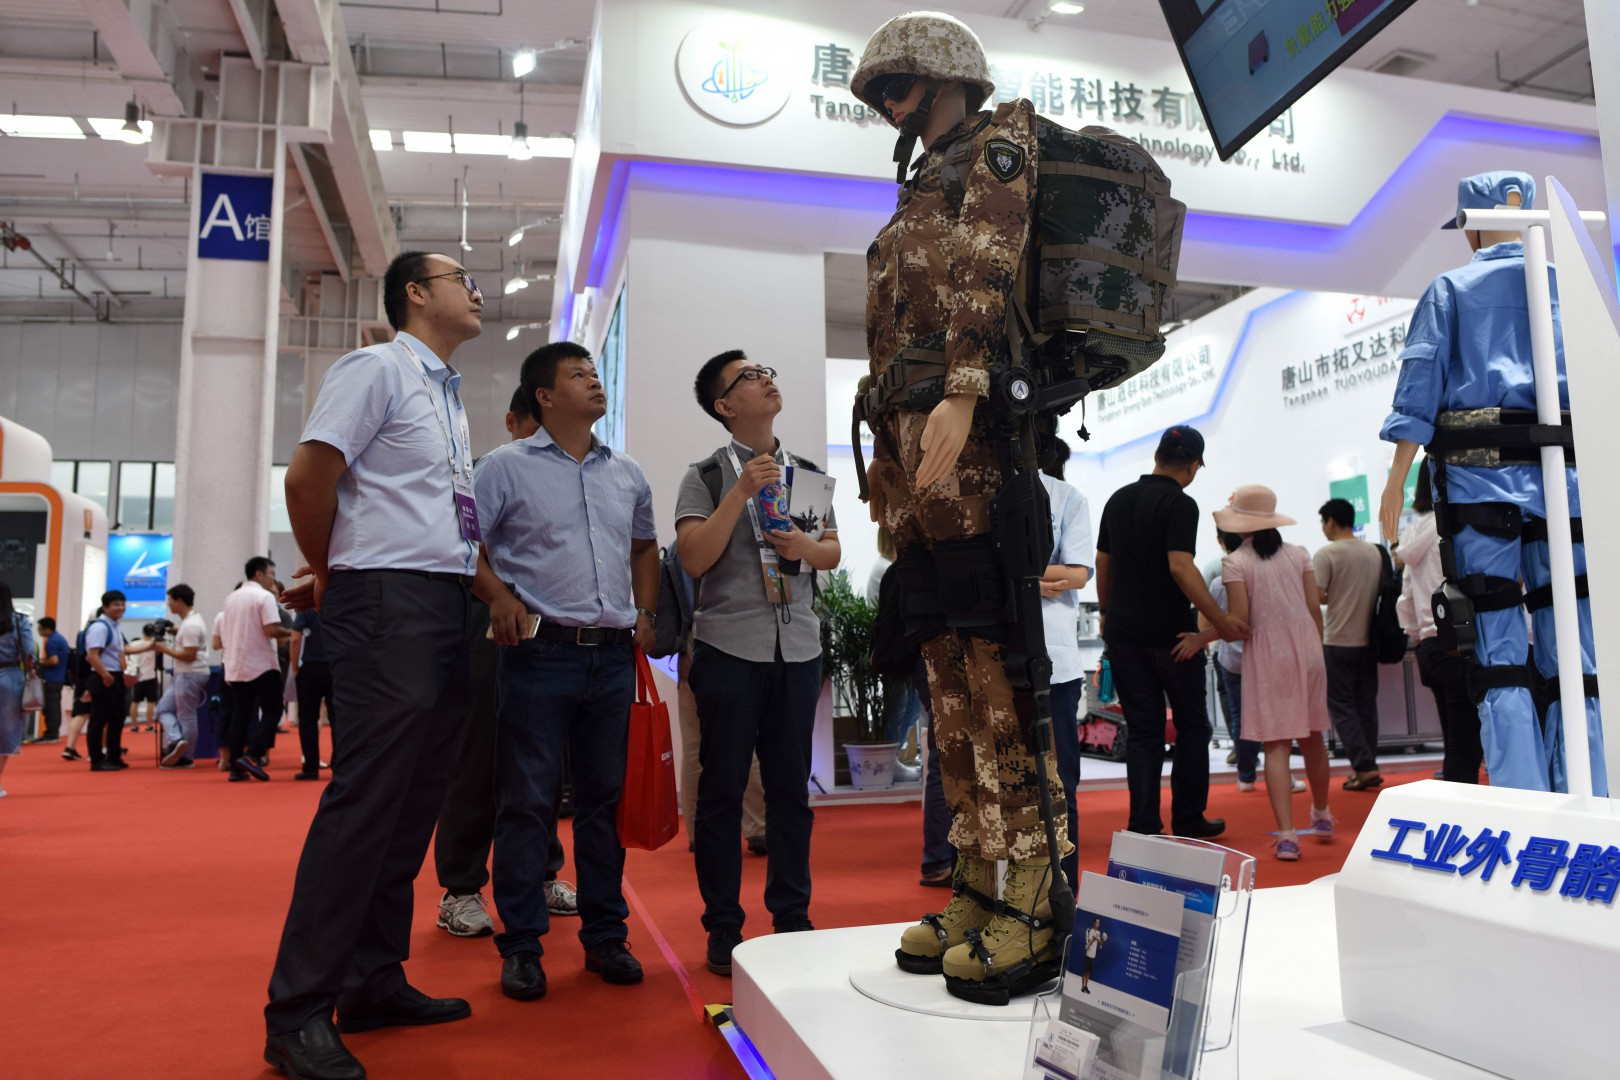 A group of men look at a exoskeleton robot at the 2018 World Robot Conference in Beijing on August 15, 2018. (Photo by WANG Zhao / AFP)